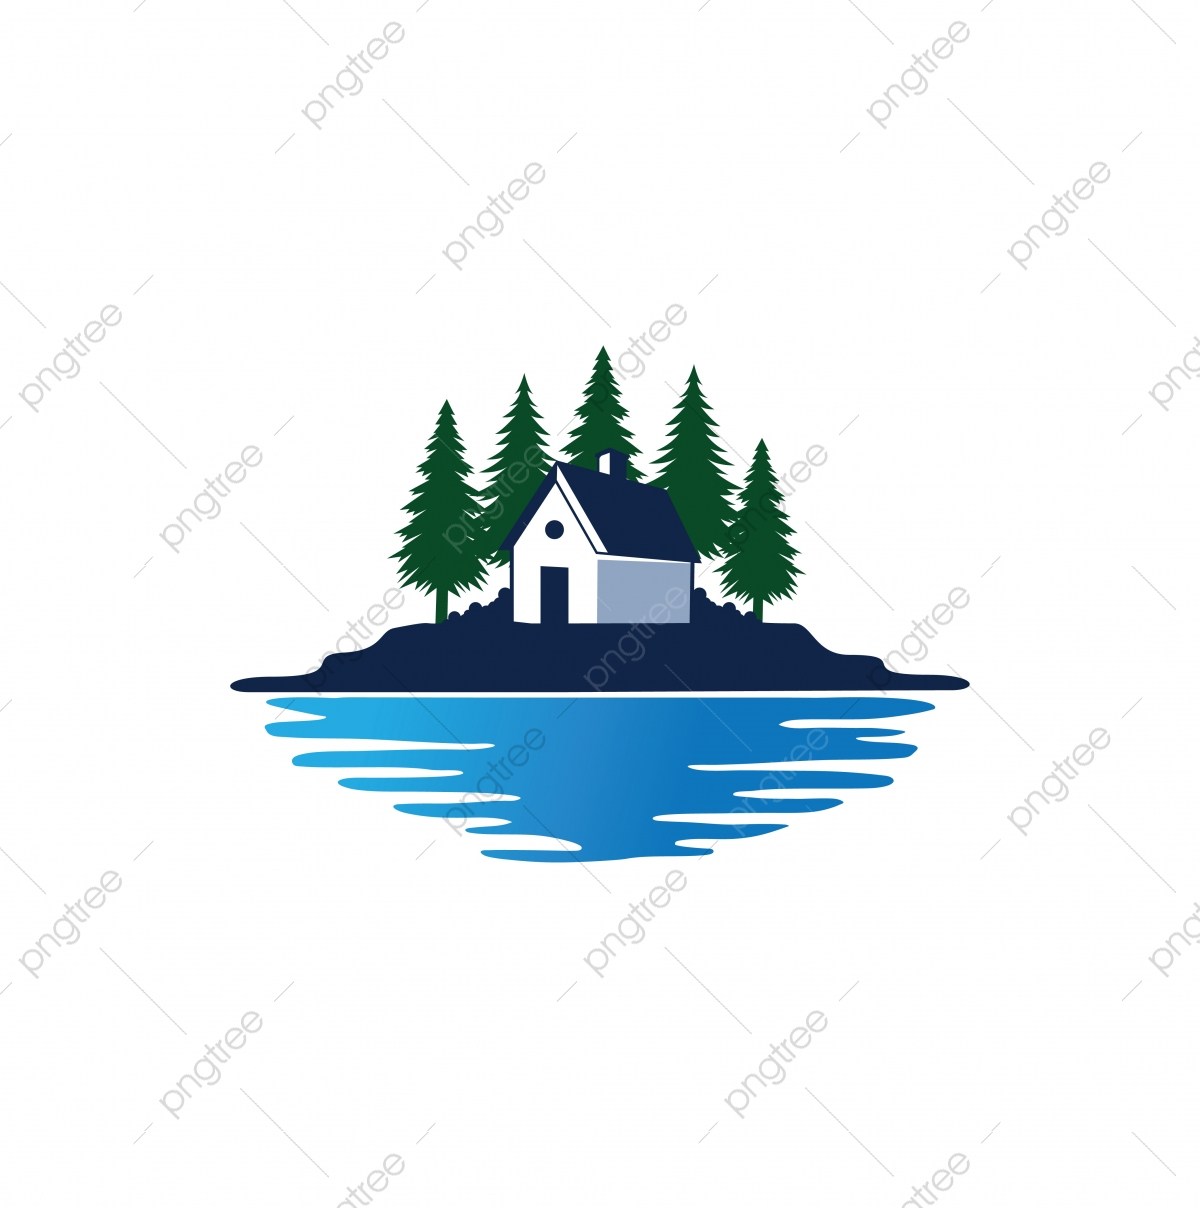 Lake Vector Png Vector Psd And Clipart With Transparent Background For Free Download Pngtree